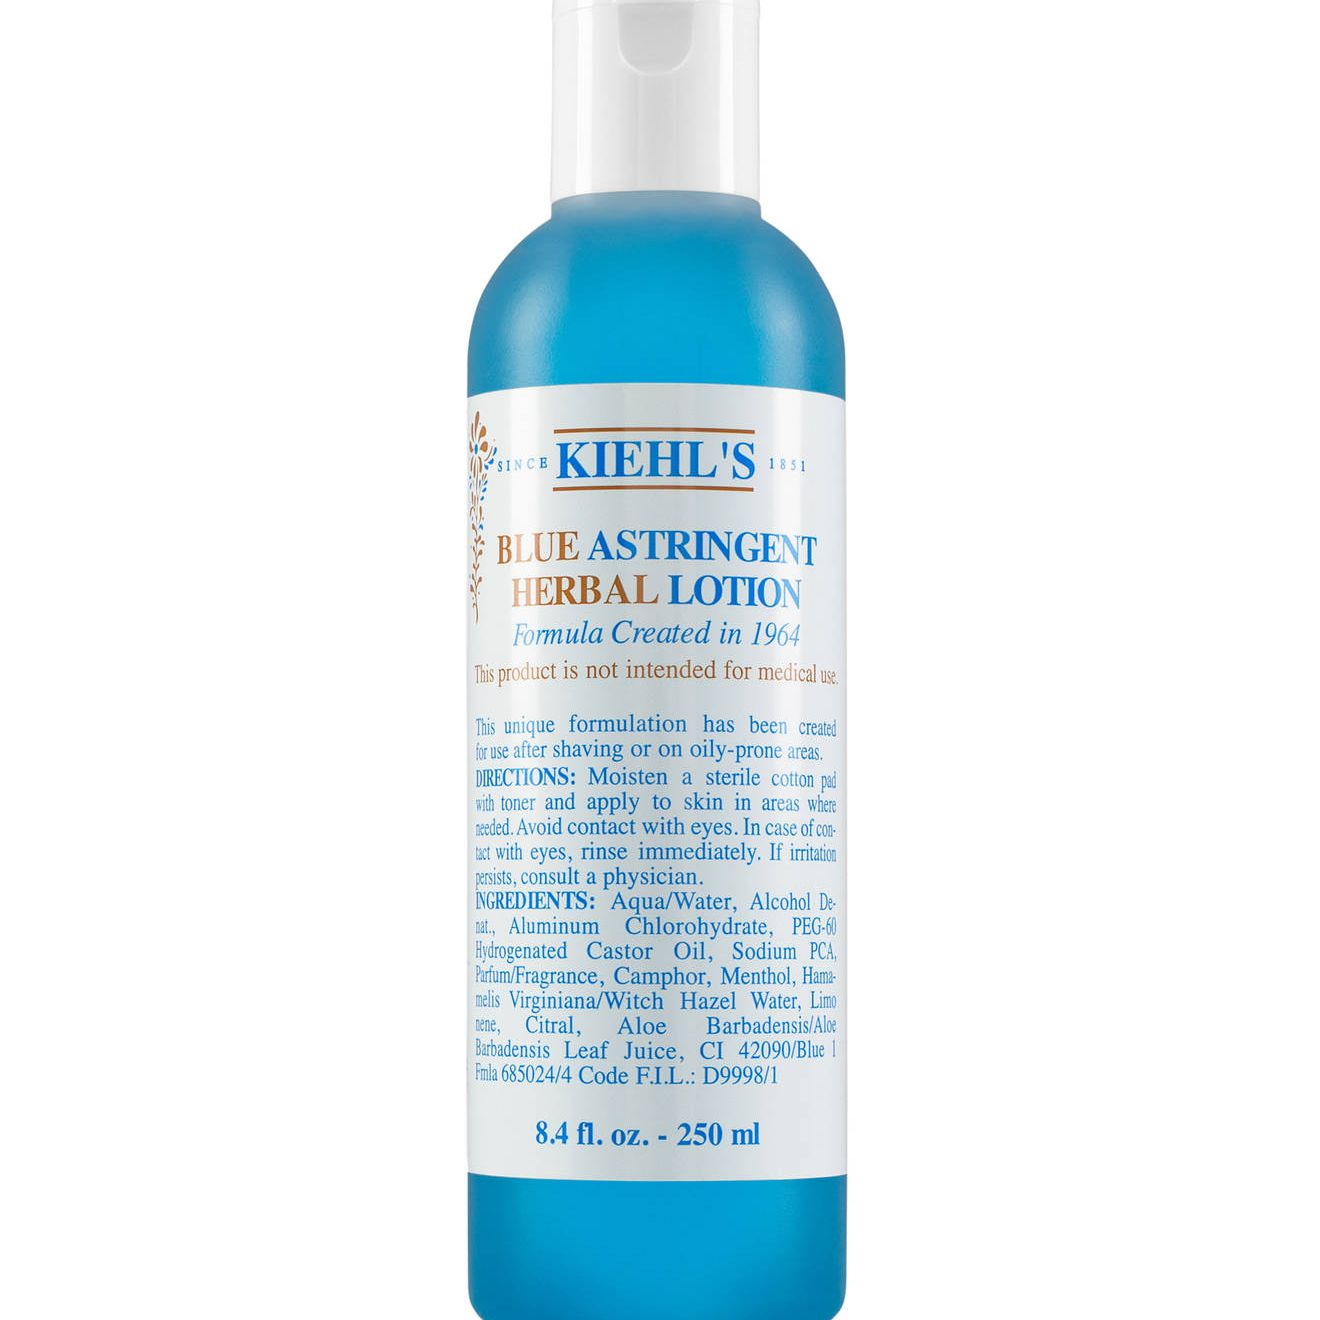 The 7 Best Toners for Oily Skin of 2019